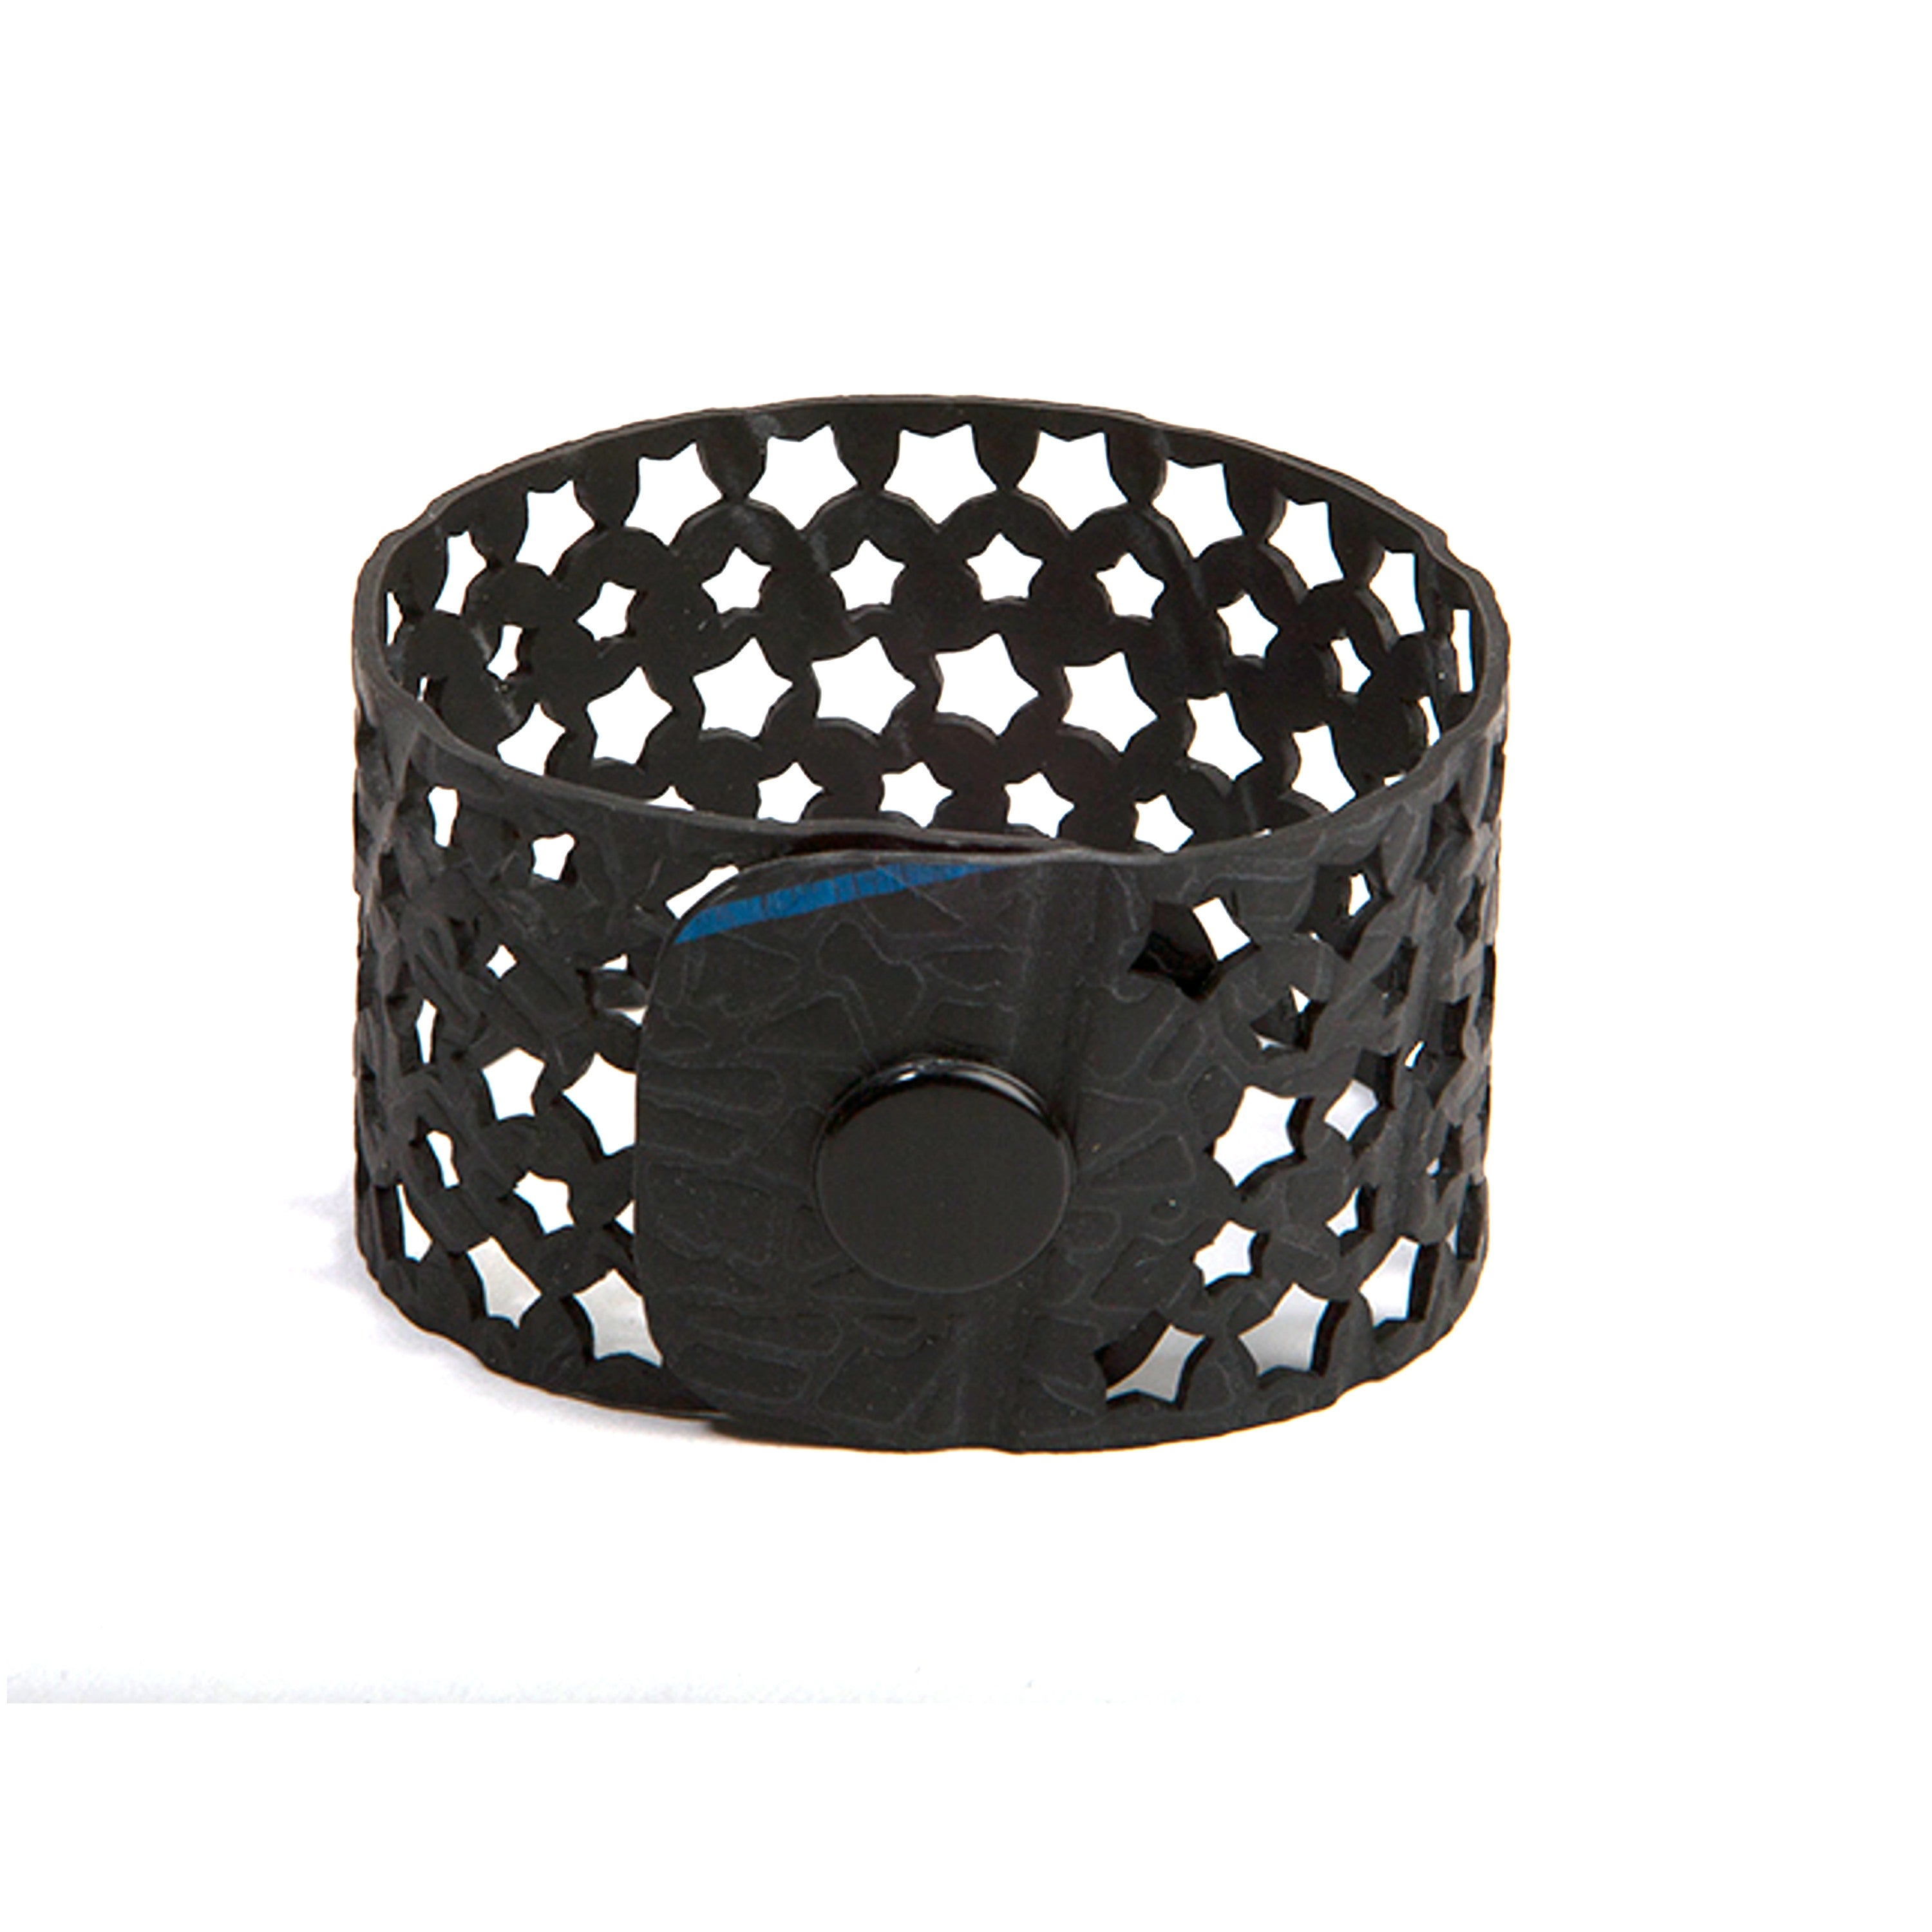 Kiky Unique Recycled Rubber Bracelet by Paguro Upcycle